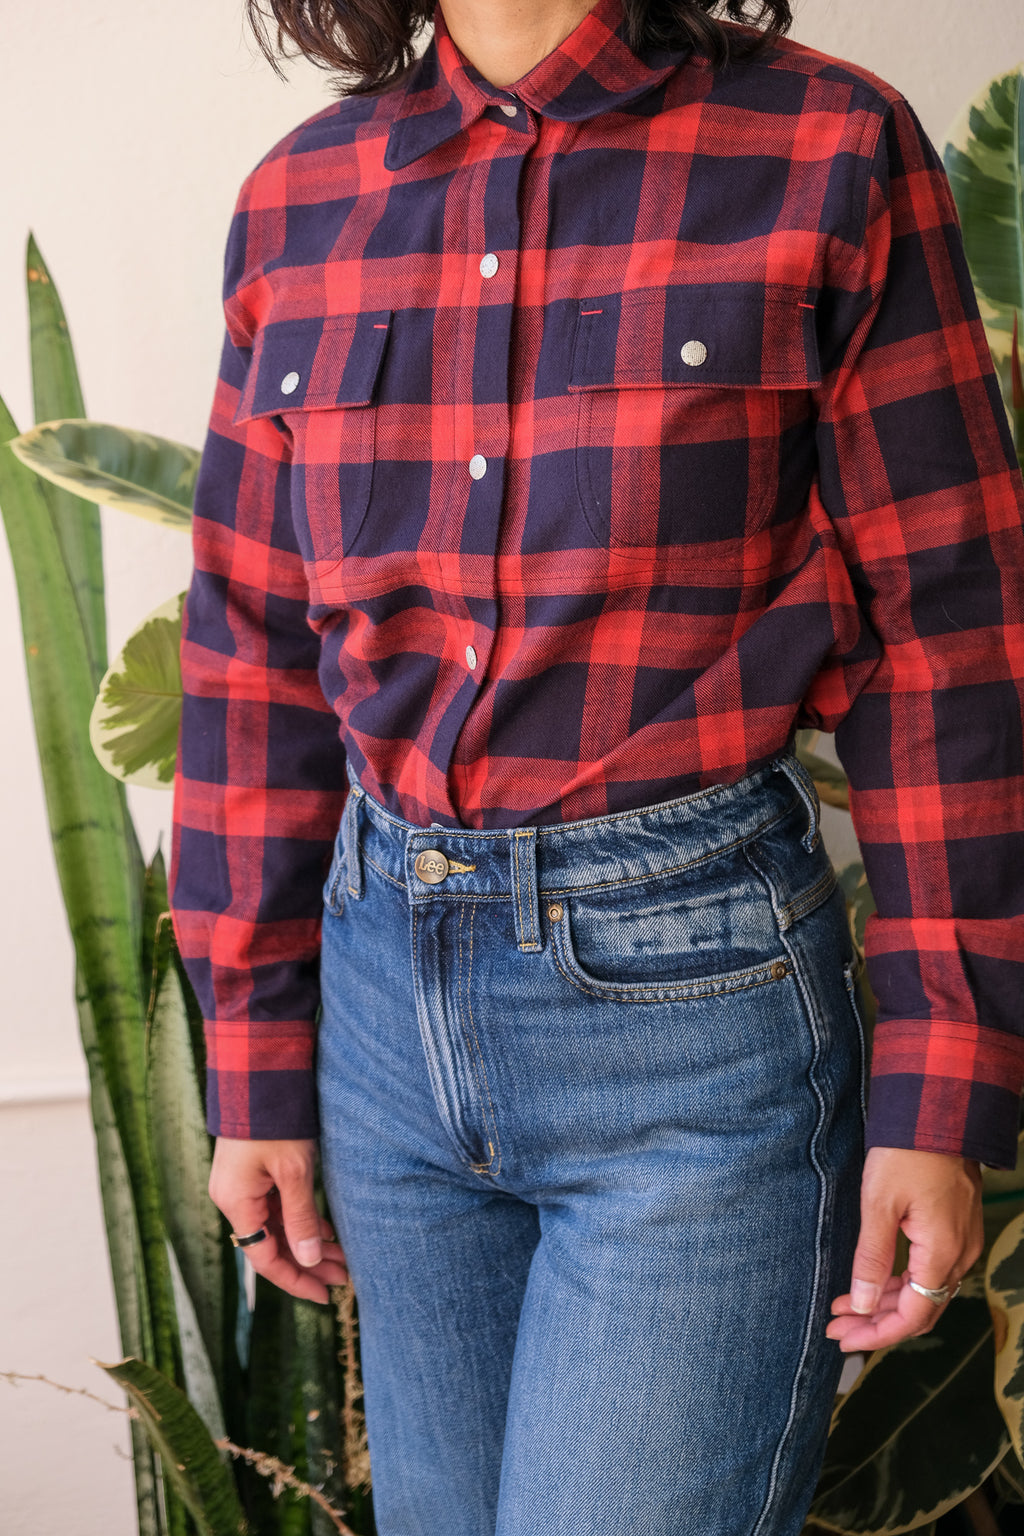 Crew Shirt in Plaid Flannel